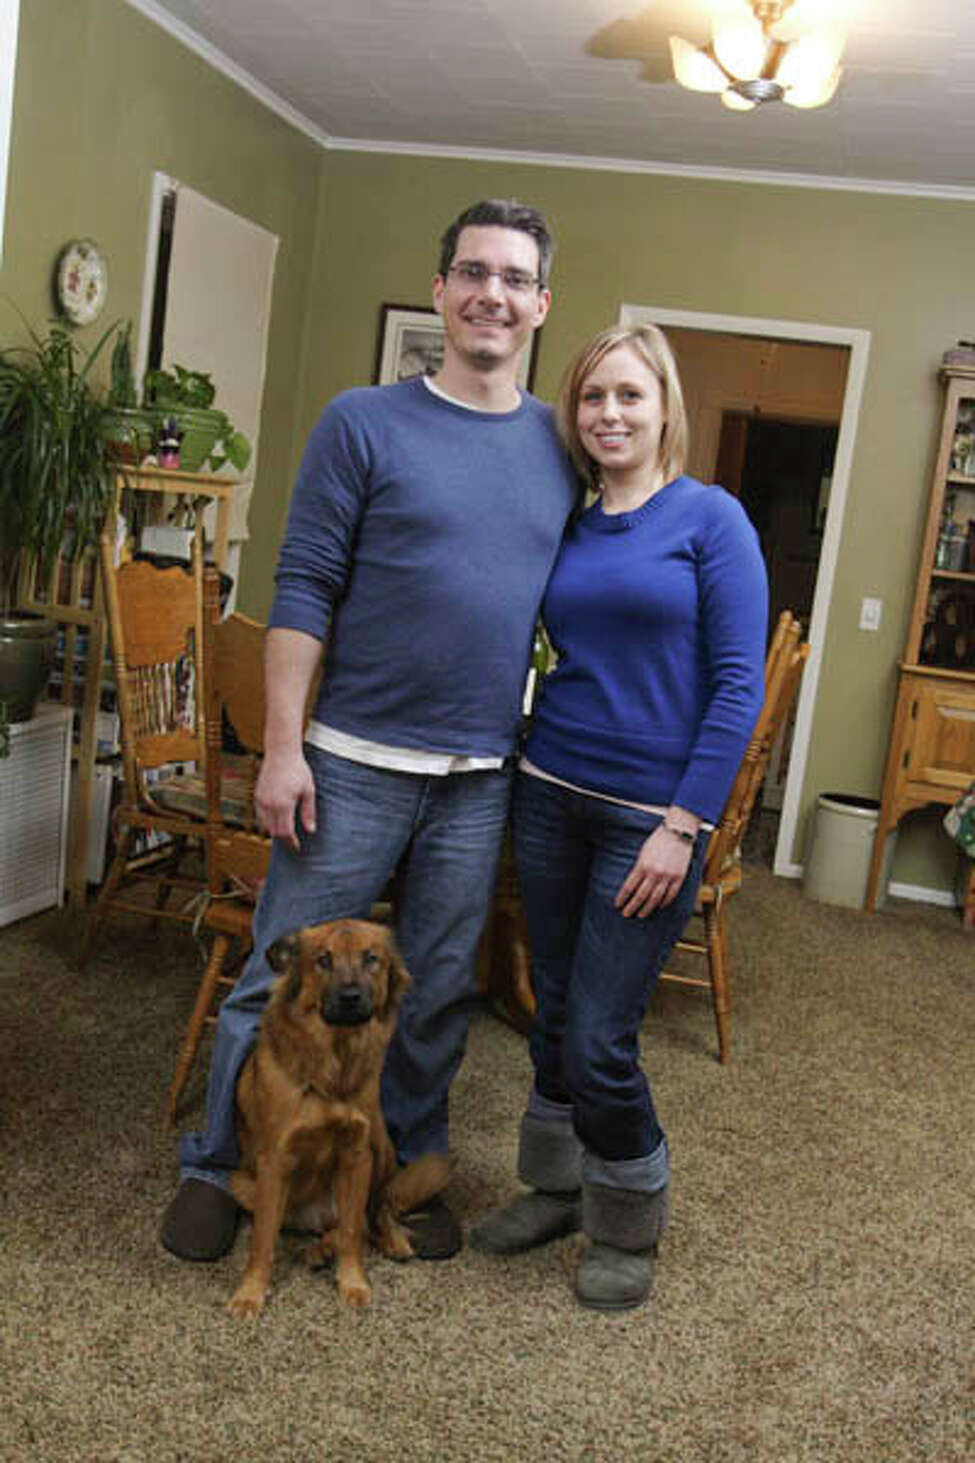 Executive chef at Creo, Brian Bowden shares a modest Troy apartment with his girlfriend Carly Mankouski and their dog, Ralph. He says his kitchen is the best of anyplace he's ever lived. Read the story here Get the Chef's recipes here